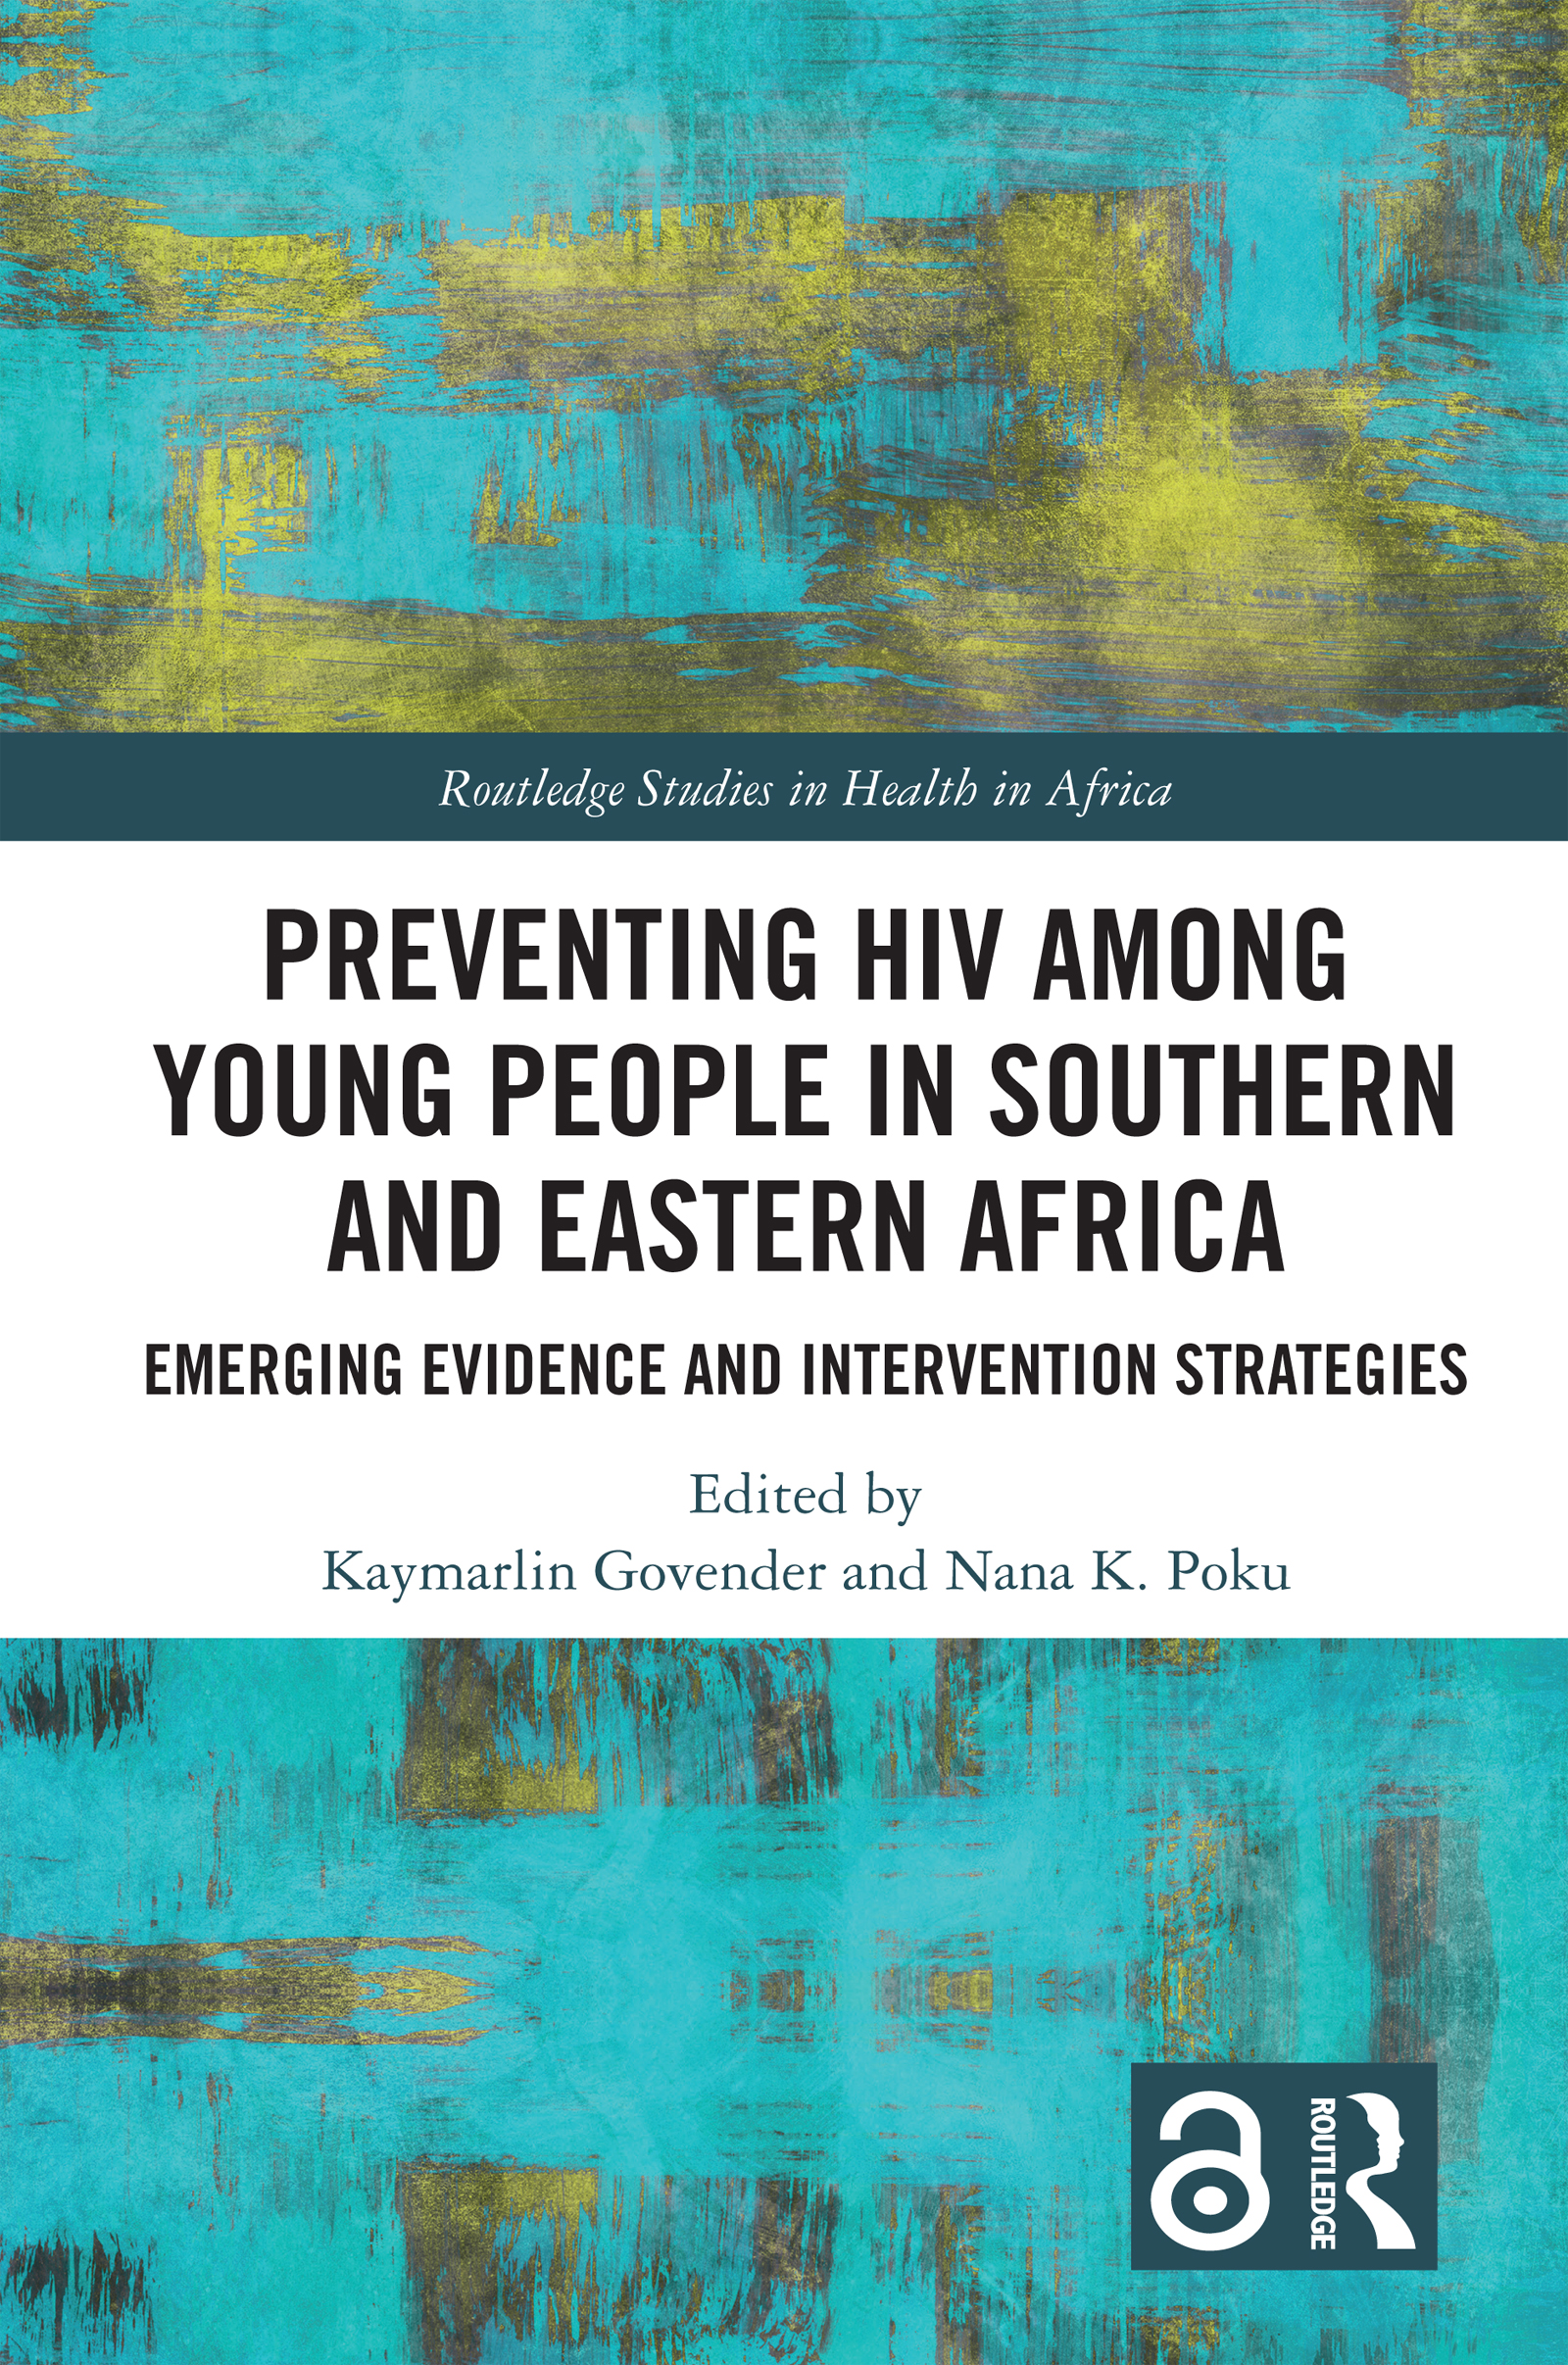 Preventing HIV Among Young People in Southern and Eastern Africa